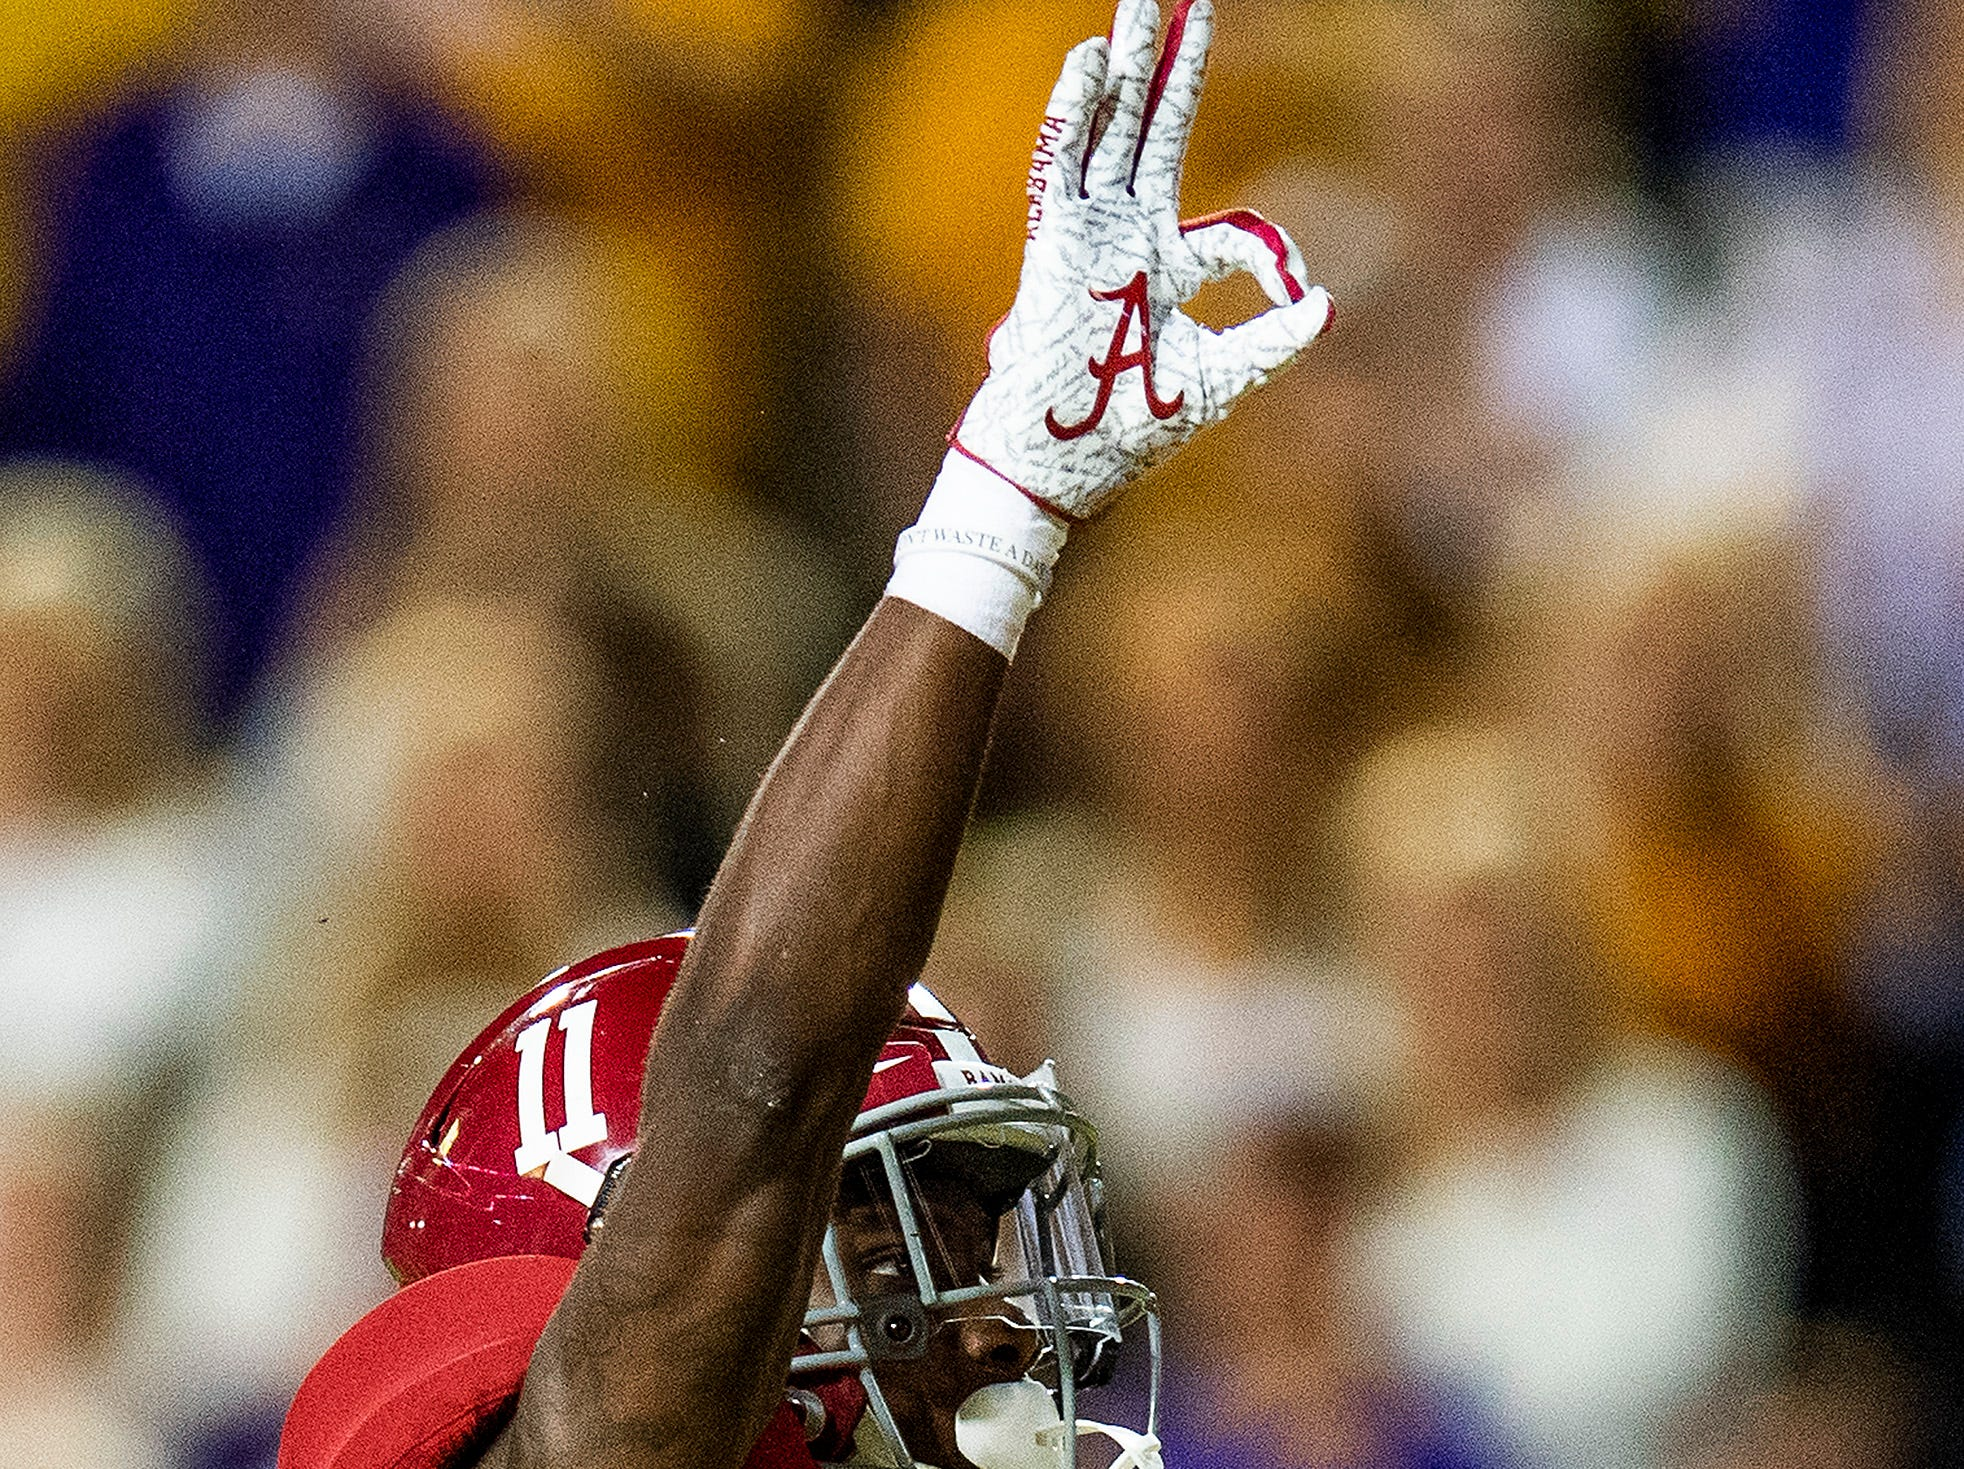 Alabama wide receiver Henry Ruggs, III, (11) celebrates his touchdown against Louisiana State University in first half action at Tiger Stadium in Baton Rouge, La., on Saturday November 3, 2018.